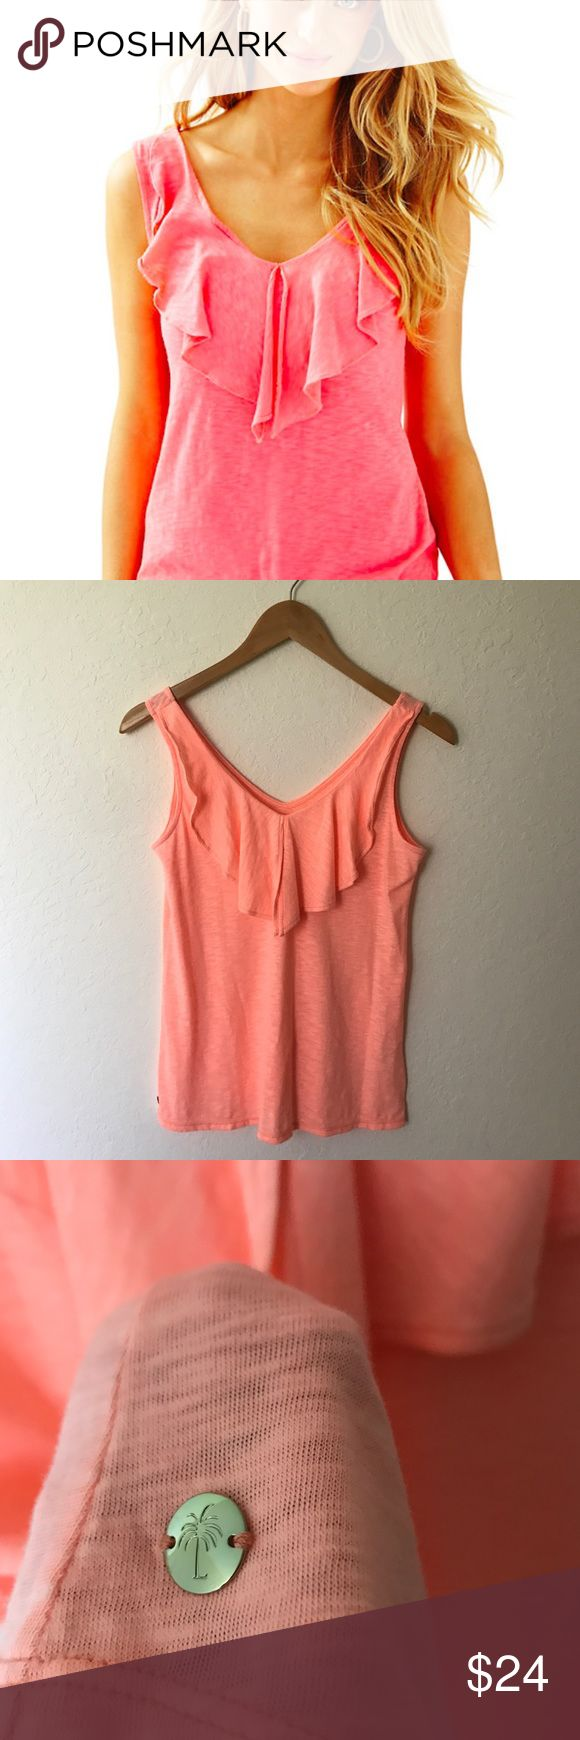 """Lilly Pulitzer Shari V-Neck Ruffle Tank Cantaloupe NWOT. Beautiful Cascading Ruffle down a v-neckline. Size is xxs but would also fit an xs. Approximate measurements when laid flat: 16"""" underarm to underarm, 25"""" length. *Note first photo is the same top in a similar color, but is not the color of the actual Tank Top for sale. The Shari Top is a V-neck tank with front flounce details & a back V-neck. This solid tank is a great alternative to a basic tank top, Metal Logo Plate…"""